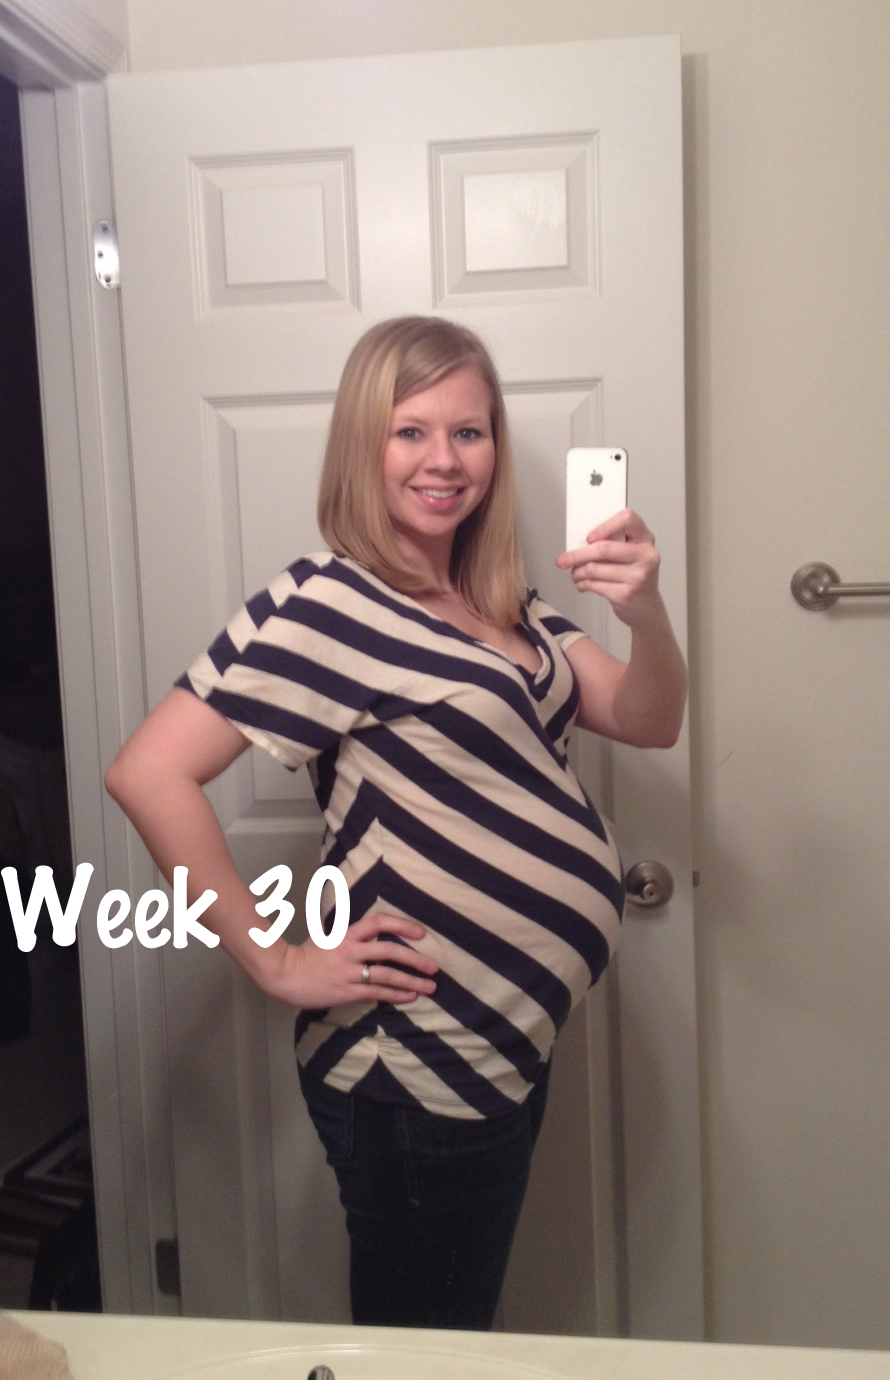 30 Weeks Pregnant - Belly Pictures! Woo Hoo! - Modernly Morgan